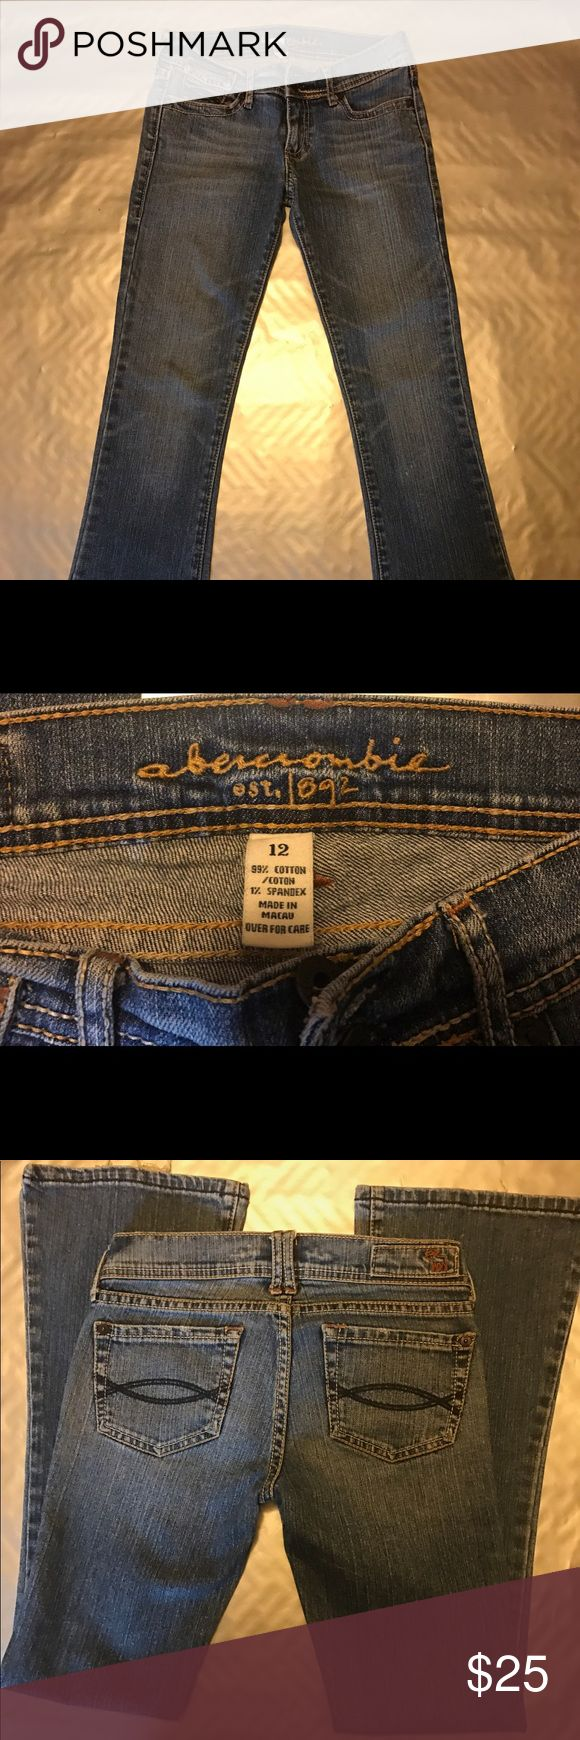 Abercrombie Jeans Abercrombie jeans , great condition with a little wear , check pics out ! Lots of love left in them ! Great school jeans ! abercrombie kids Jeans Flare & Wide Leg